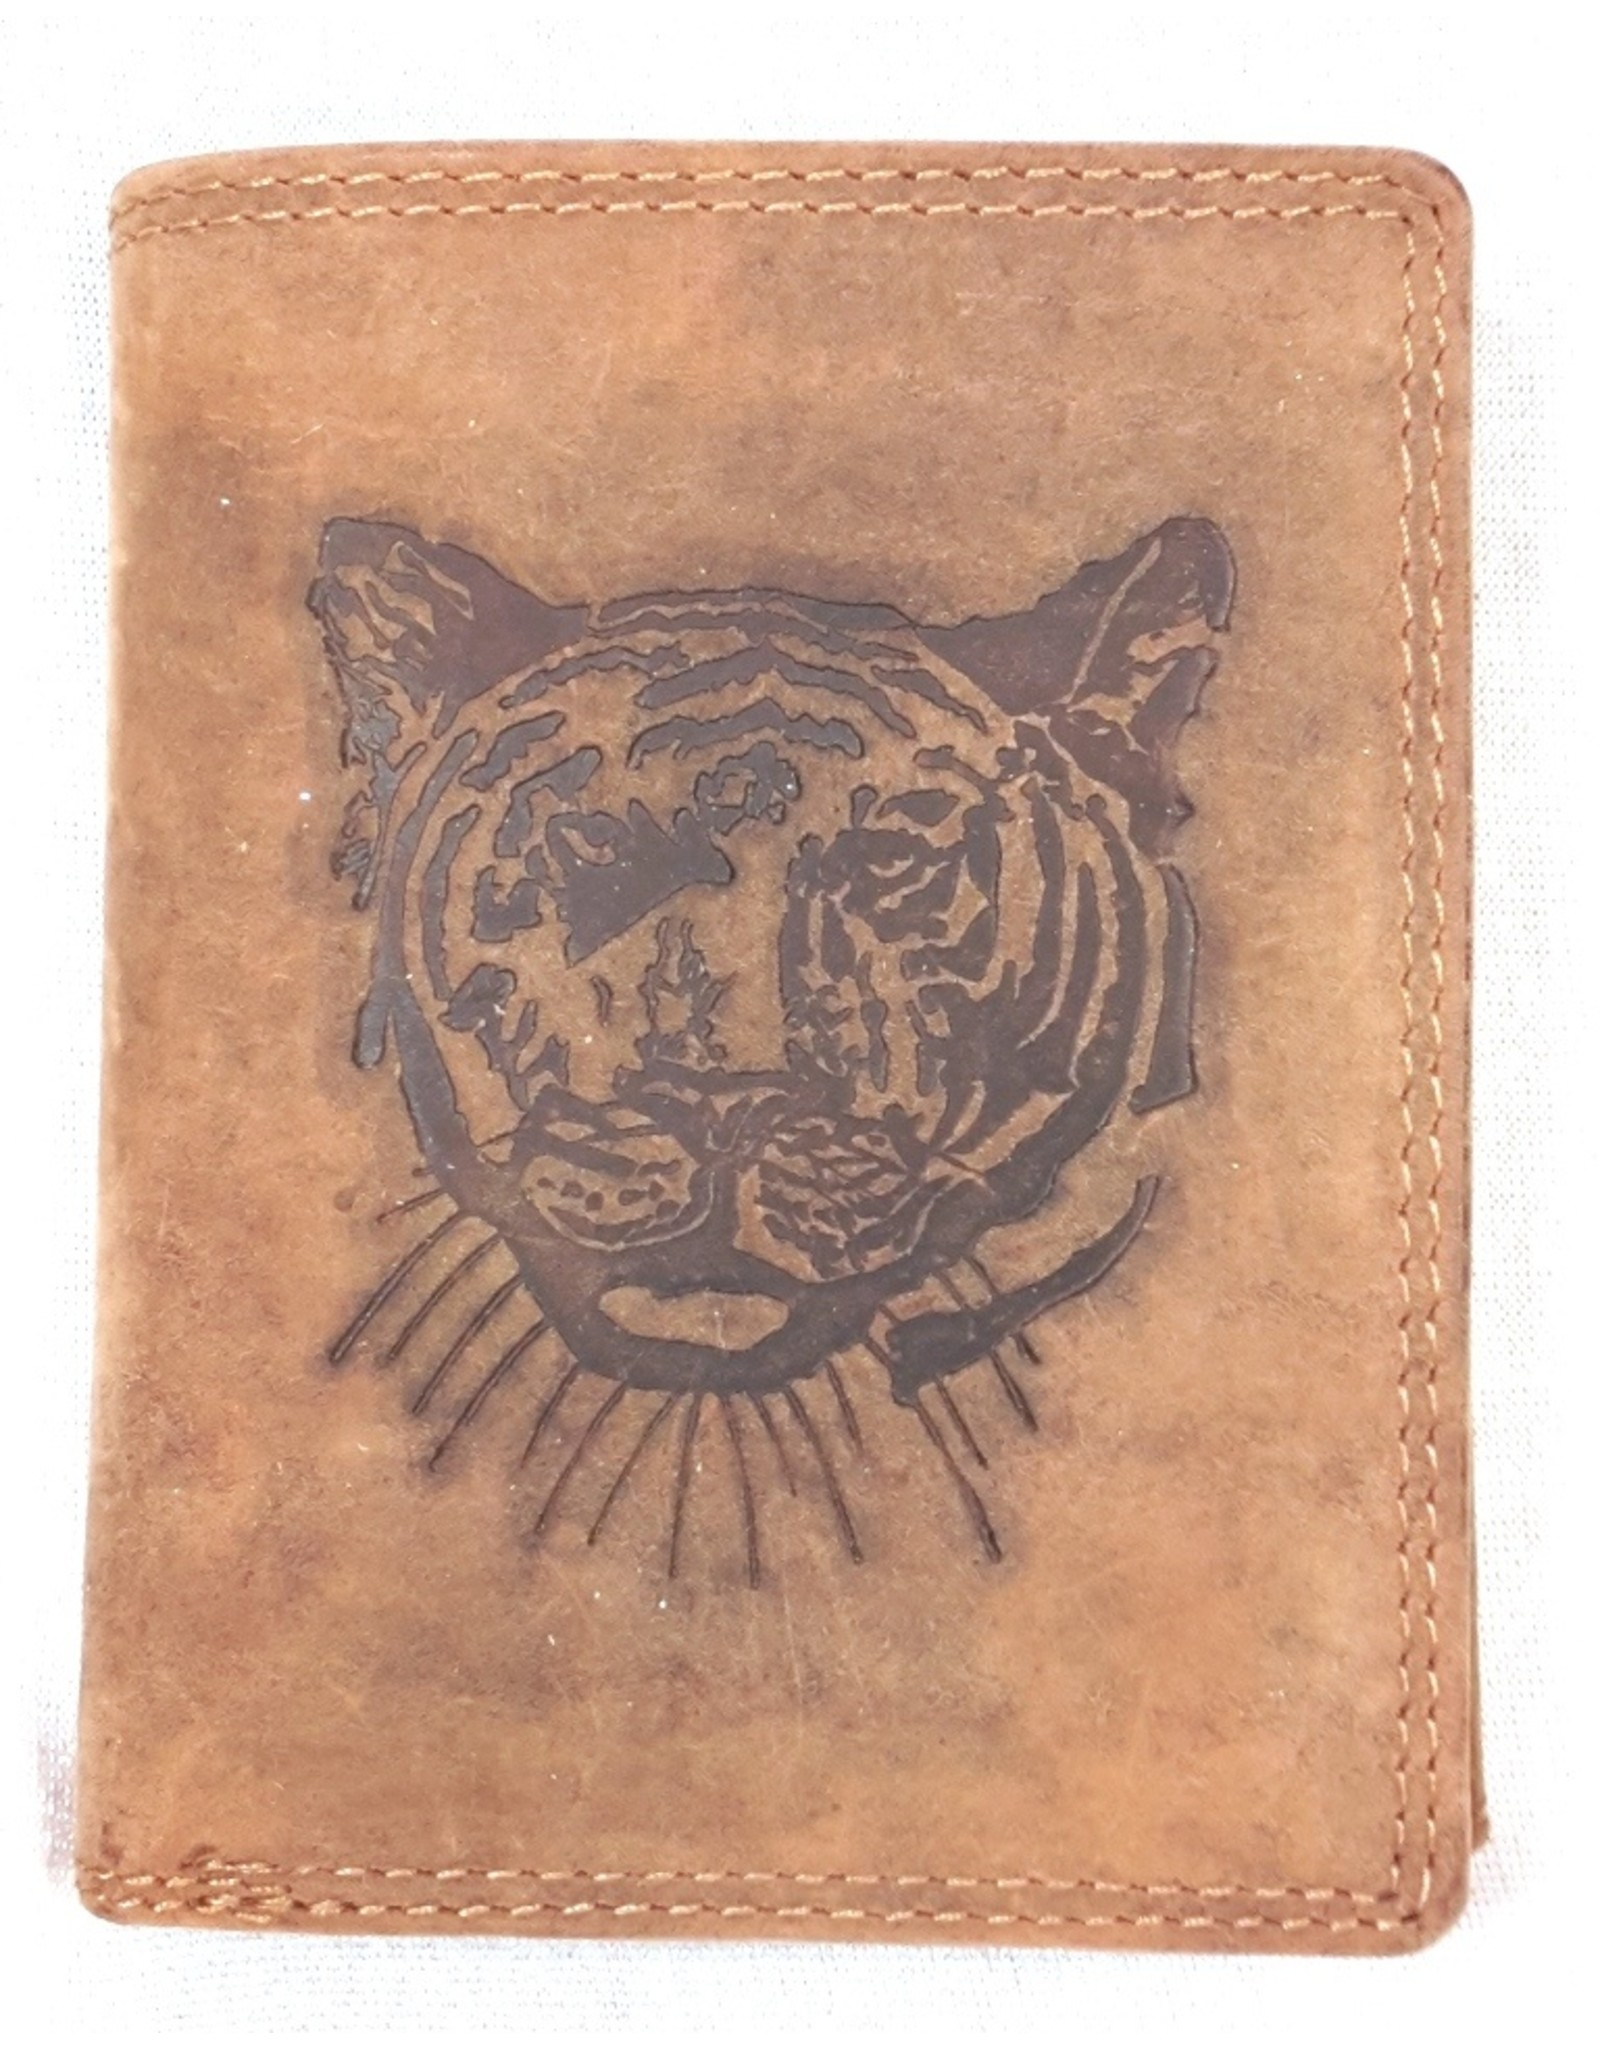 Huttman Leather Wallets - Leather wallet with Embossed print Tiger (vertical)